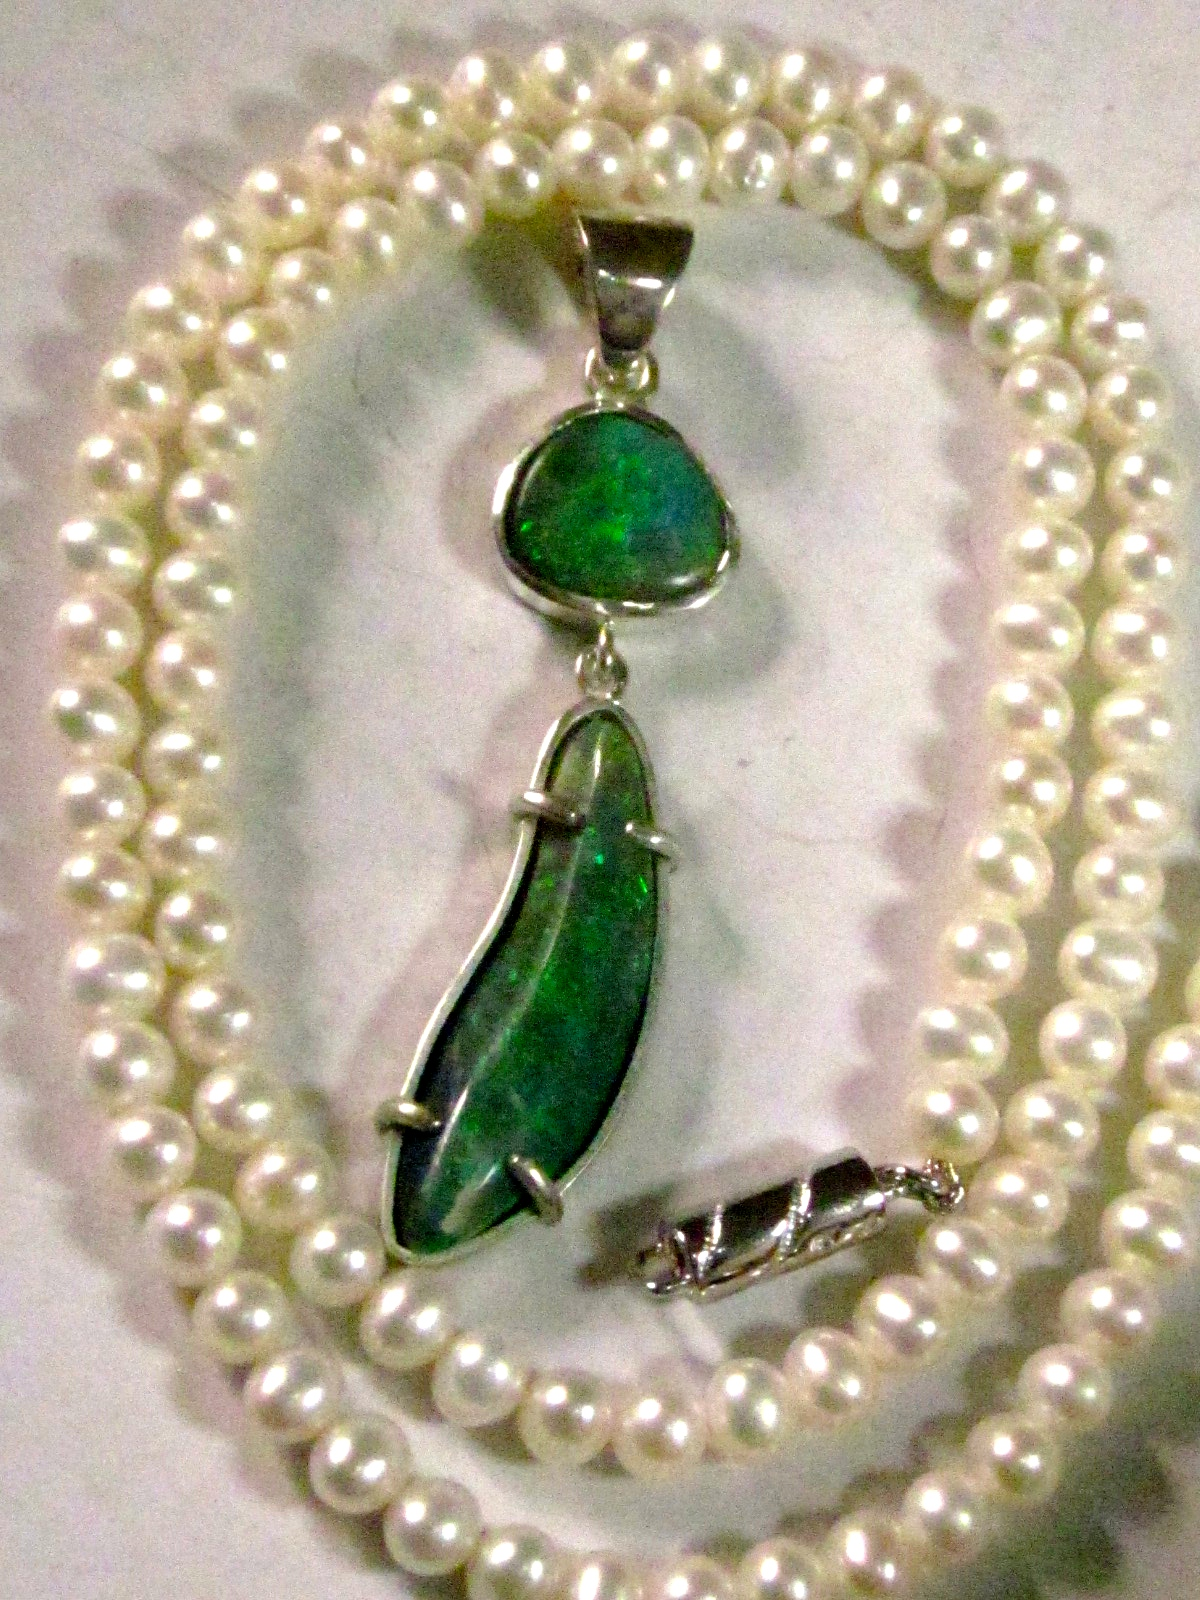 handmade opal jewelry,silver opal necklace,handmade pendant with opals